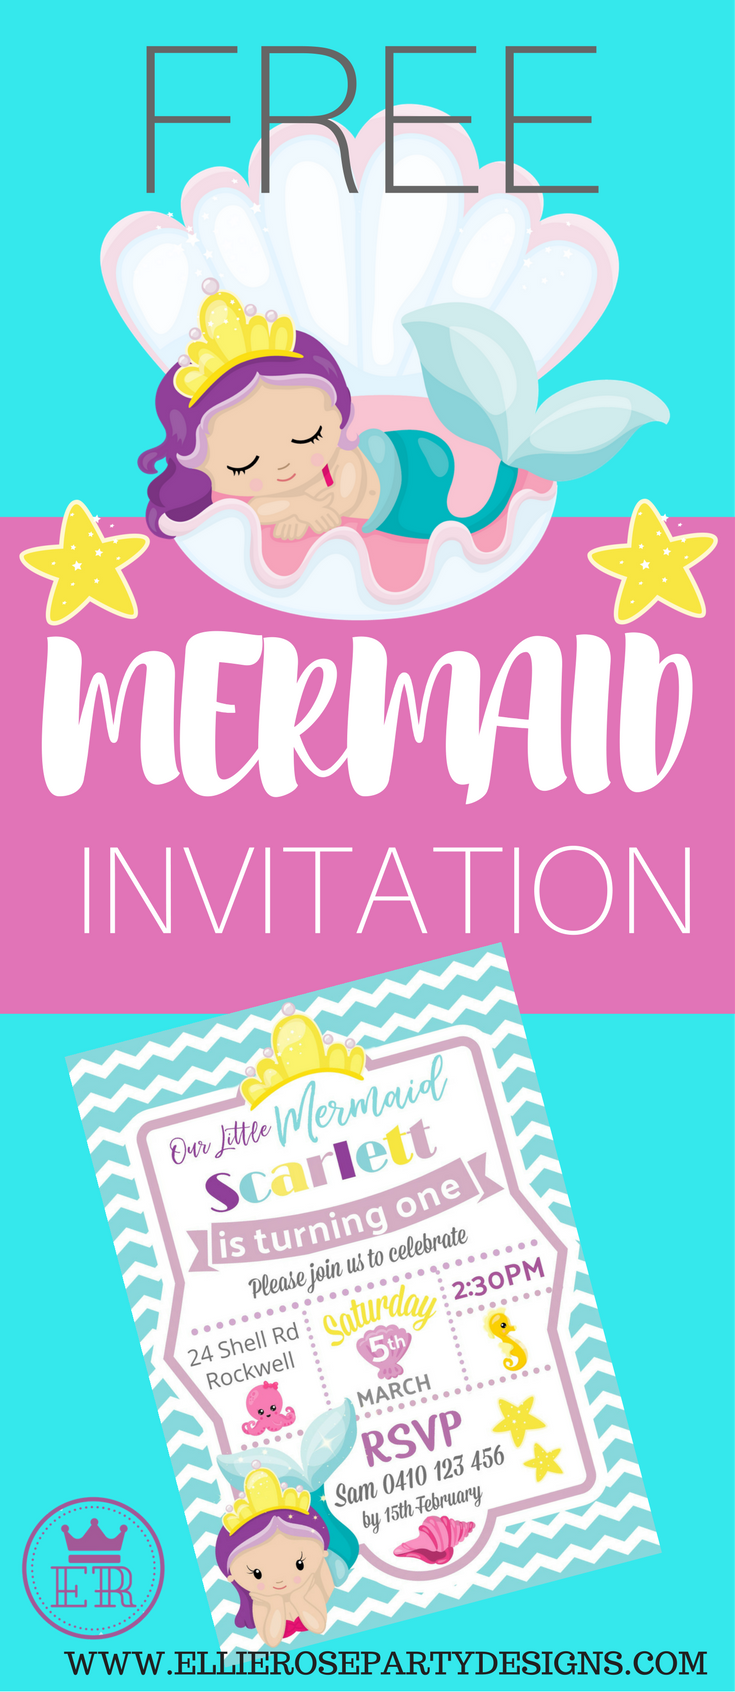 Free Mermaid Under The Sea Invitation Template To Download Step By Tutorial On How I Made It Is Included